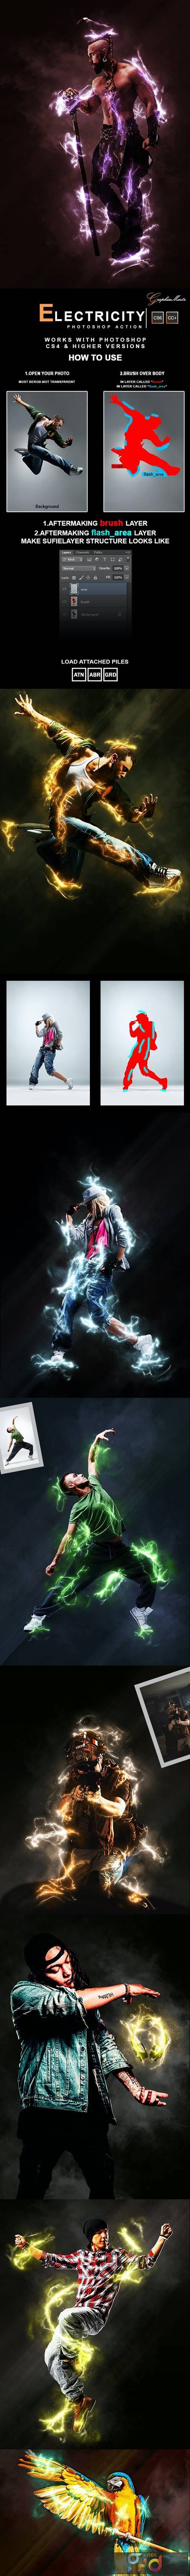 Electricity Photoshop Action 28441466 1